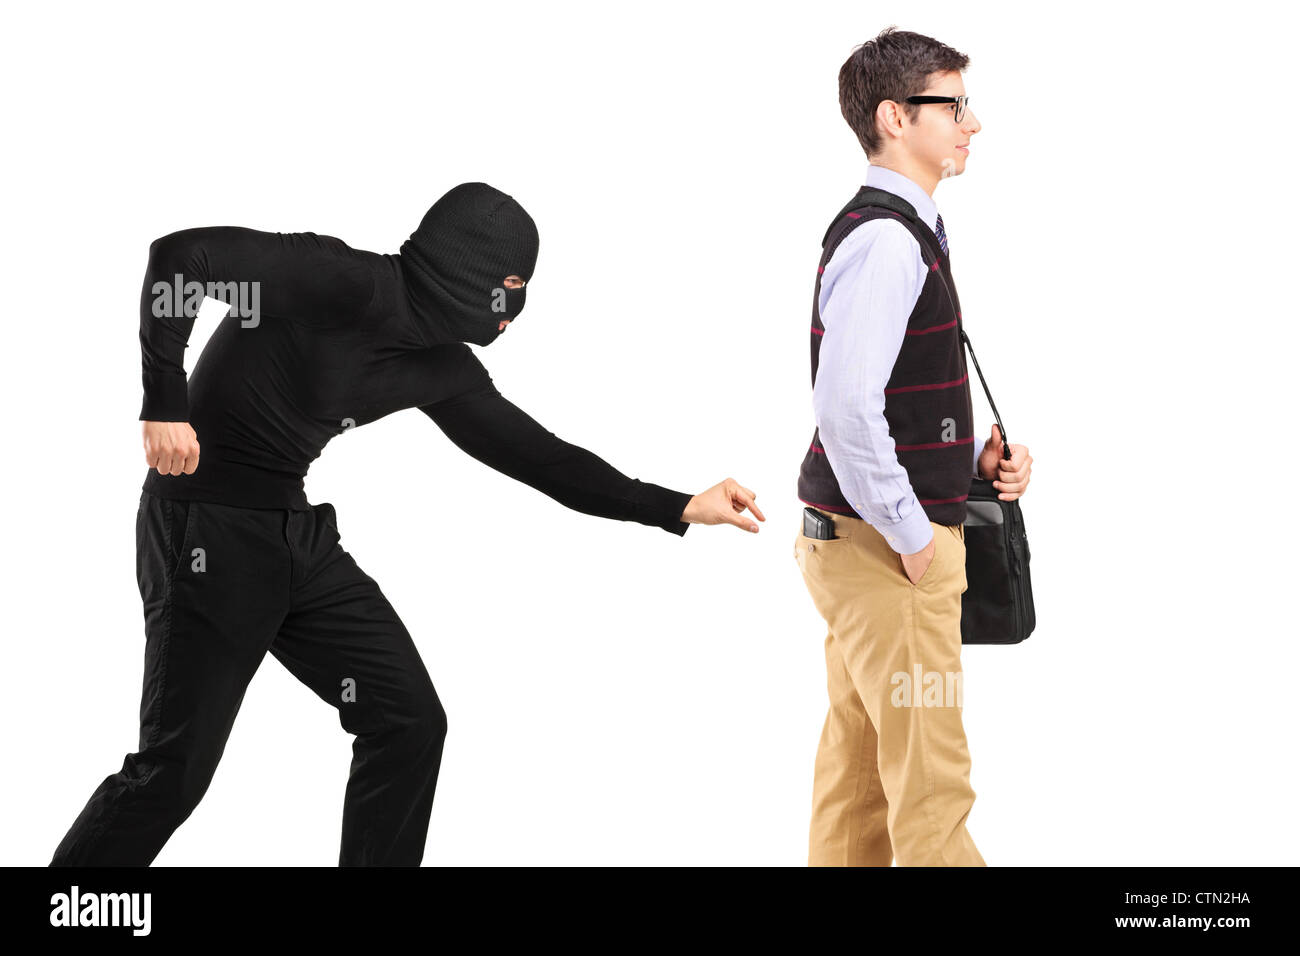 A pickpocket with mask trying to steal a wallet isolated on white background - Stock Image